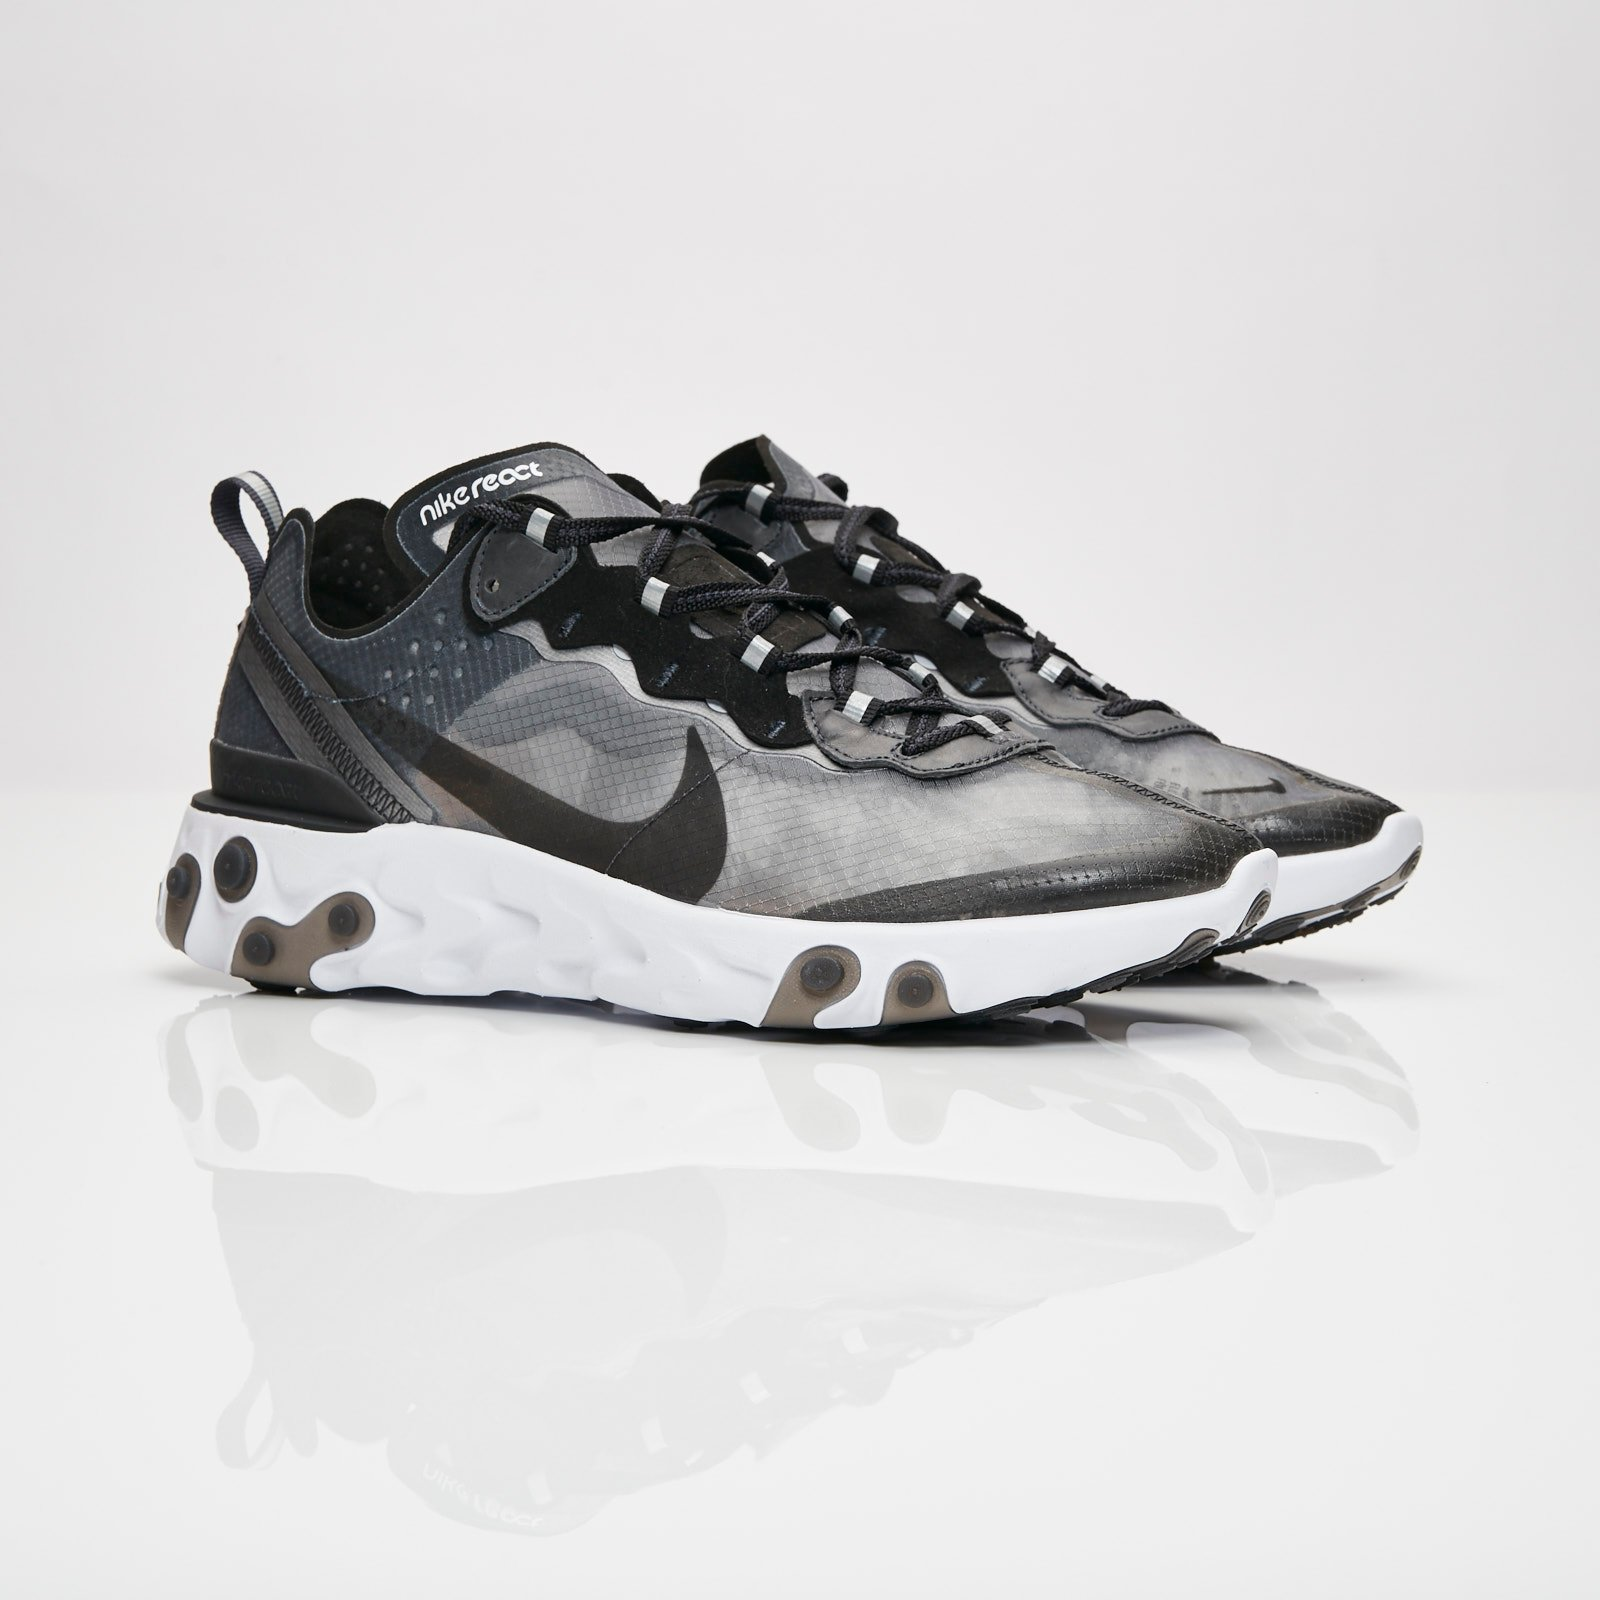 2189ff368de43 Nike React Element 87 - Aq1090-001 - Sneakersnstuff